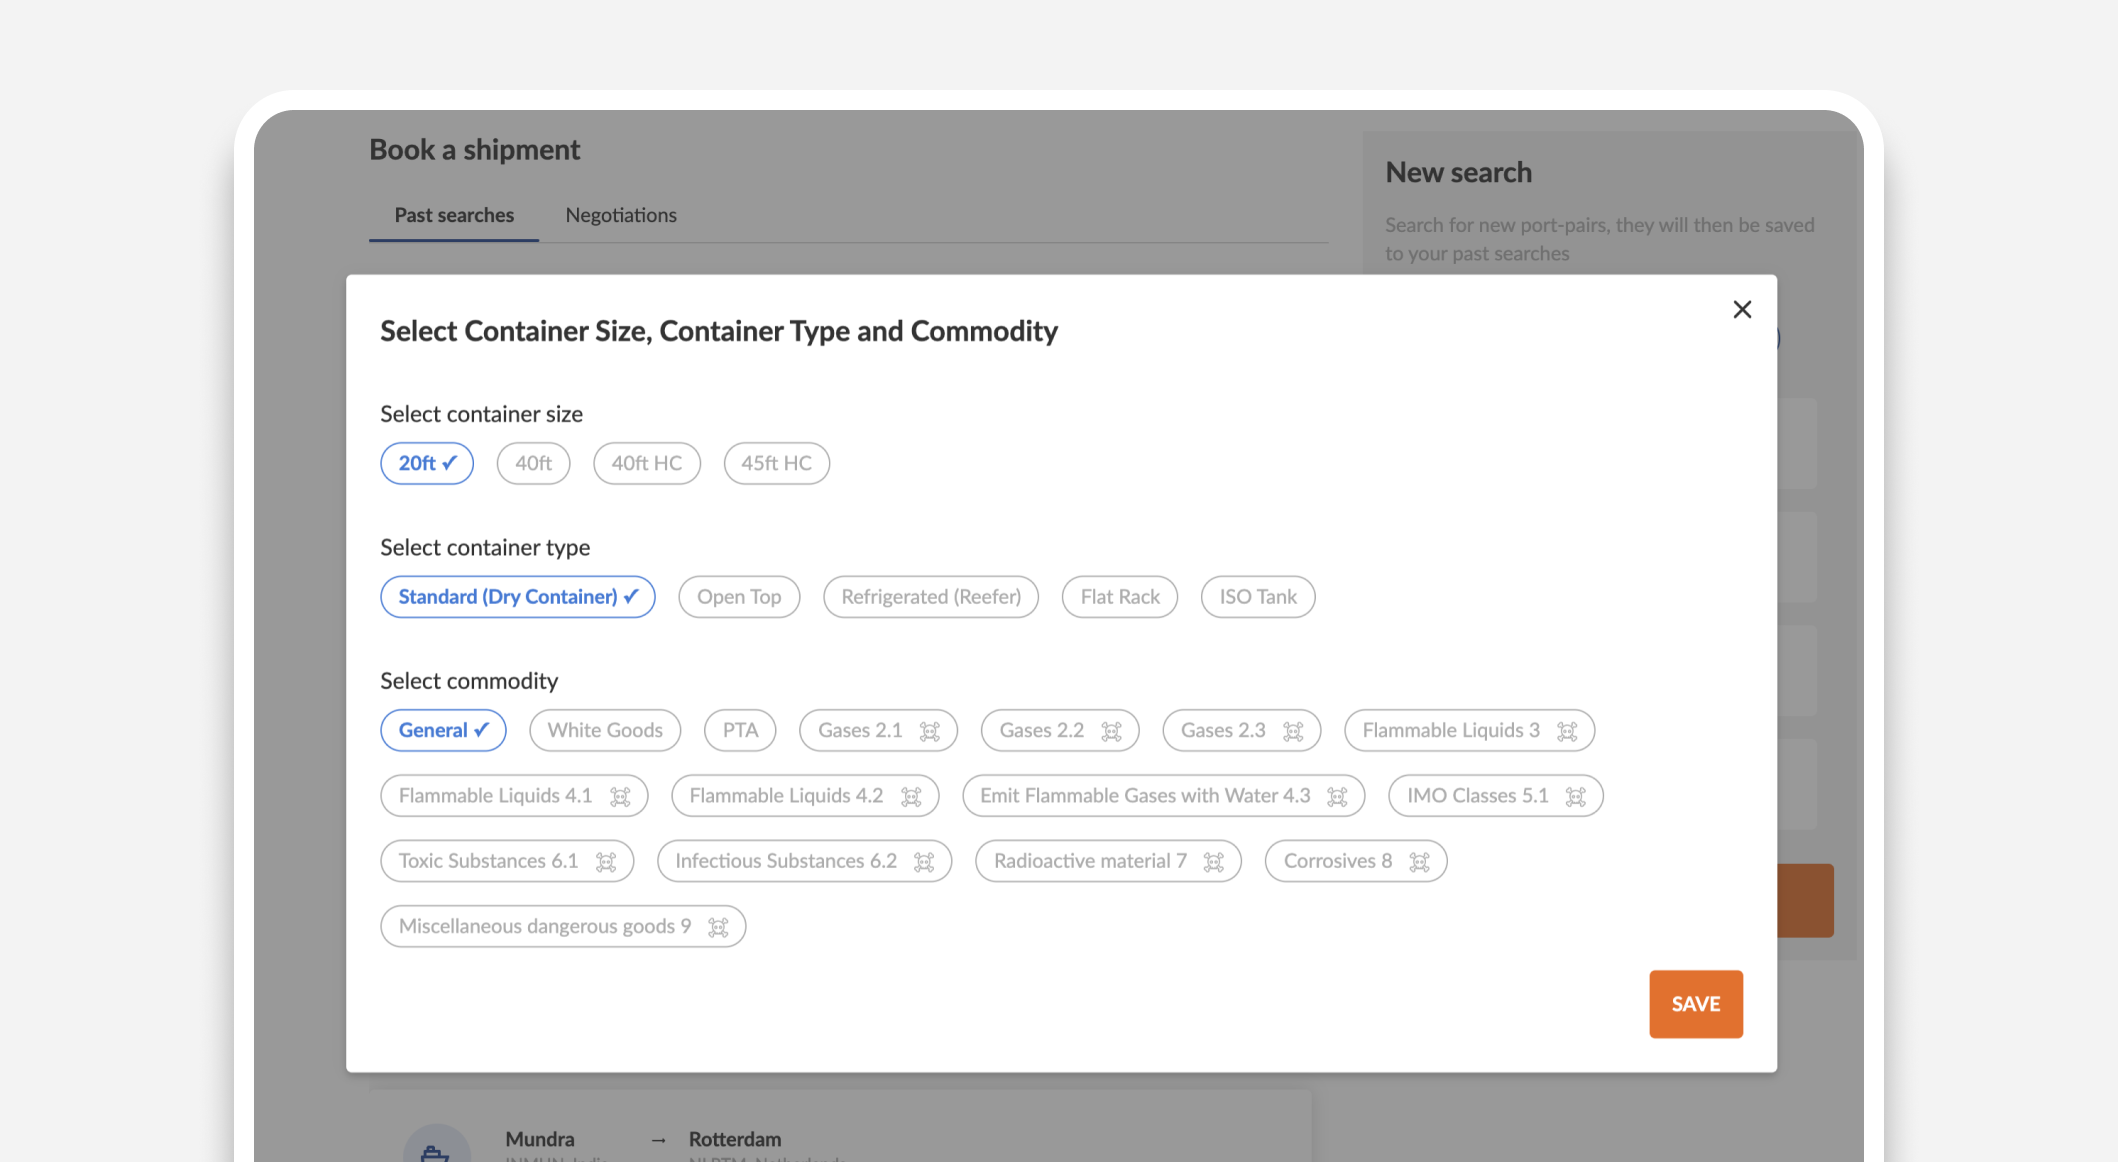 Cogoport - Select container size, container type and commodity in Freight Rate Search Page